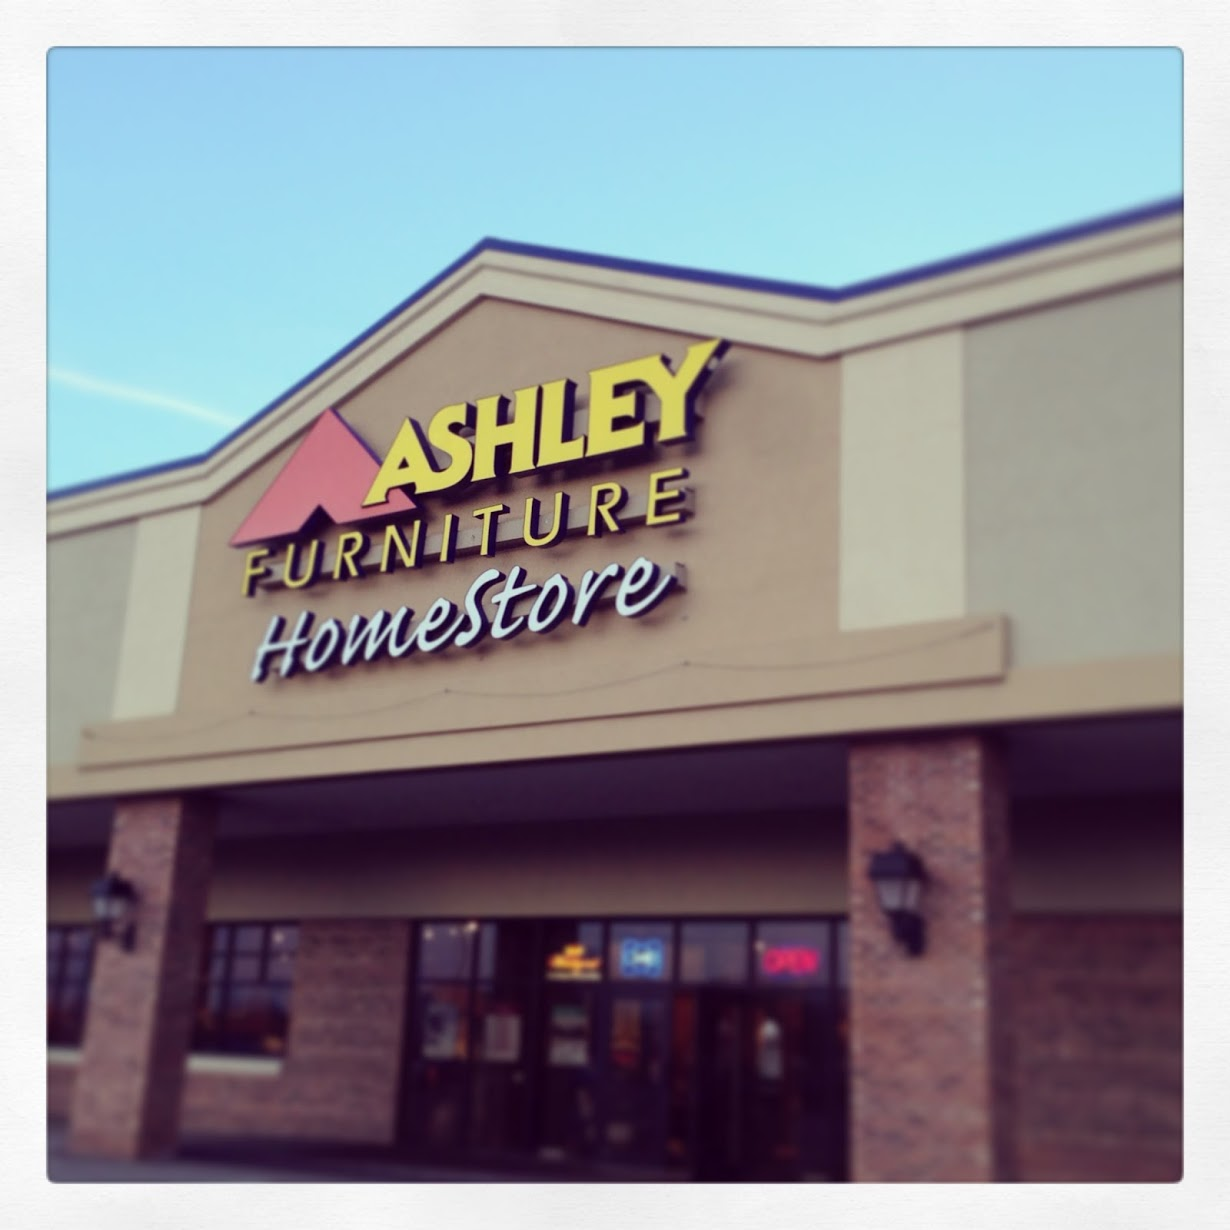 Rochester Ashley Furniture Homestore New York Ohio